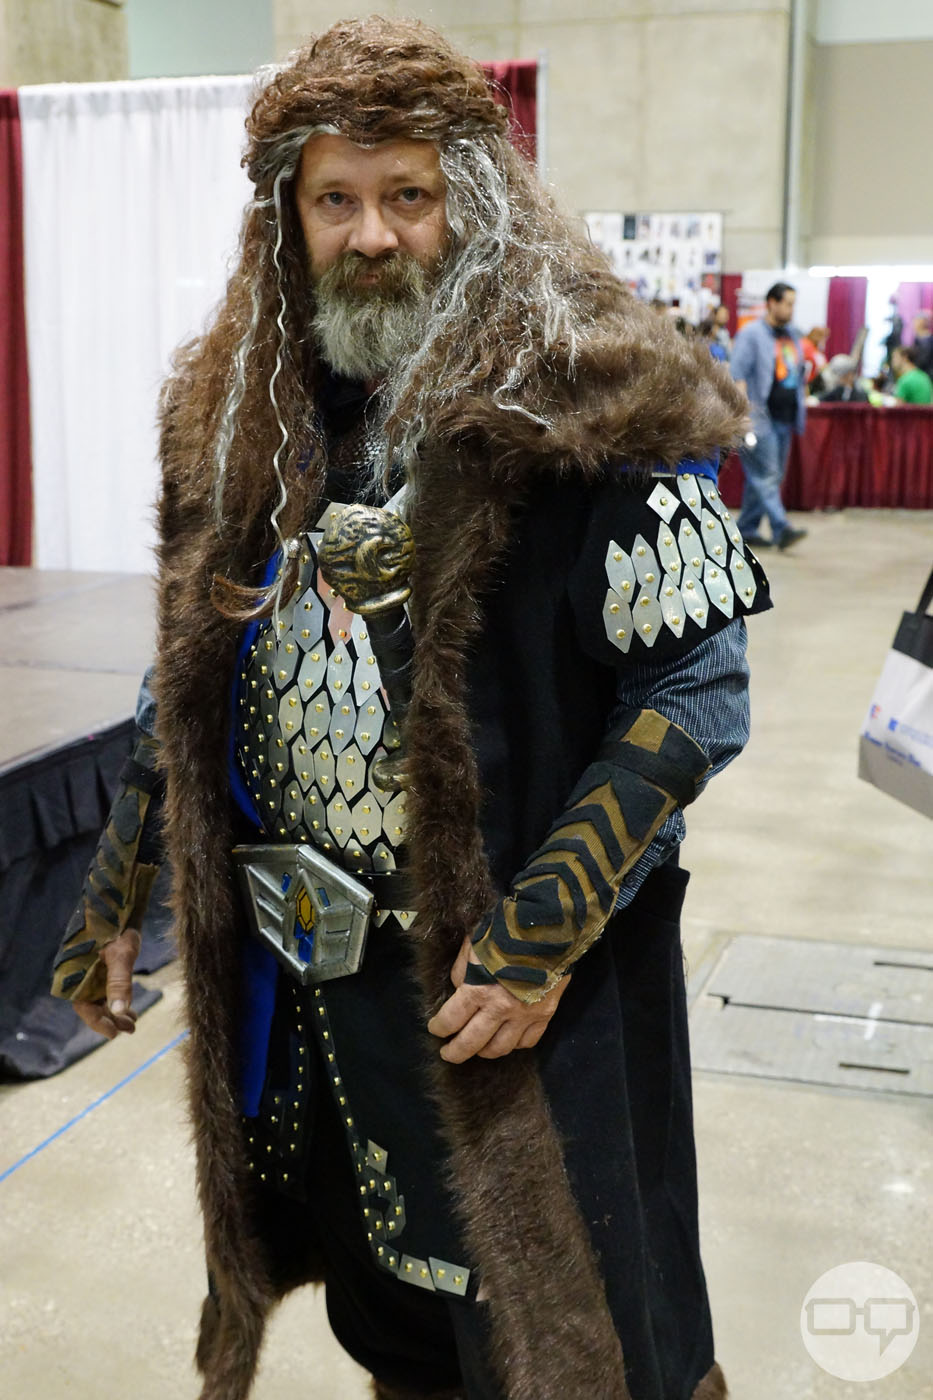 Planet-Comicon-2015-ProNerd-Cosplay-D5-13